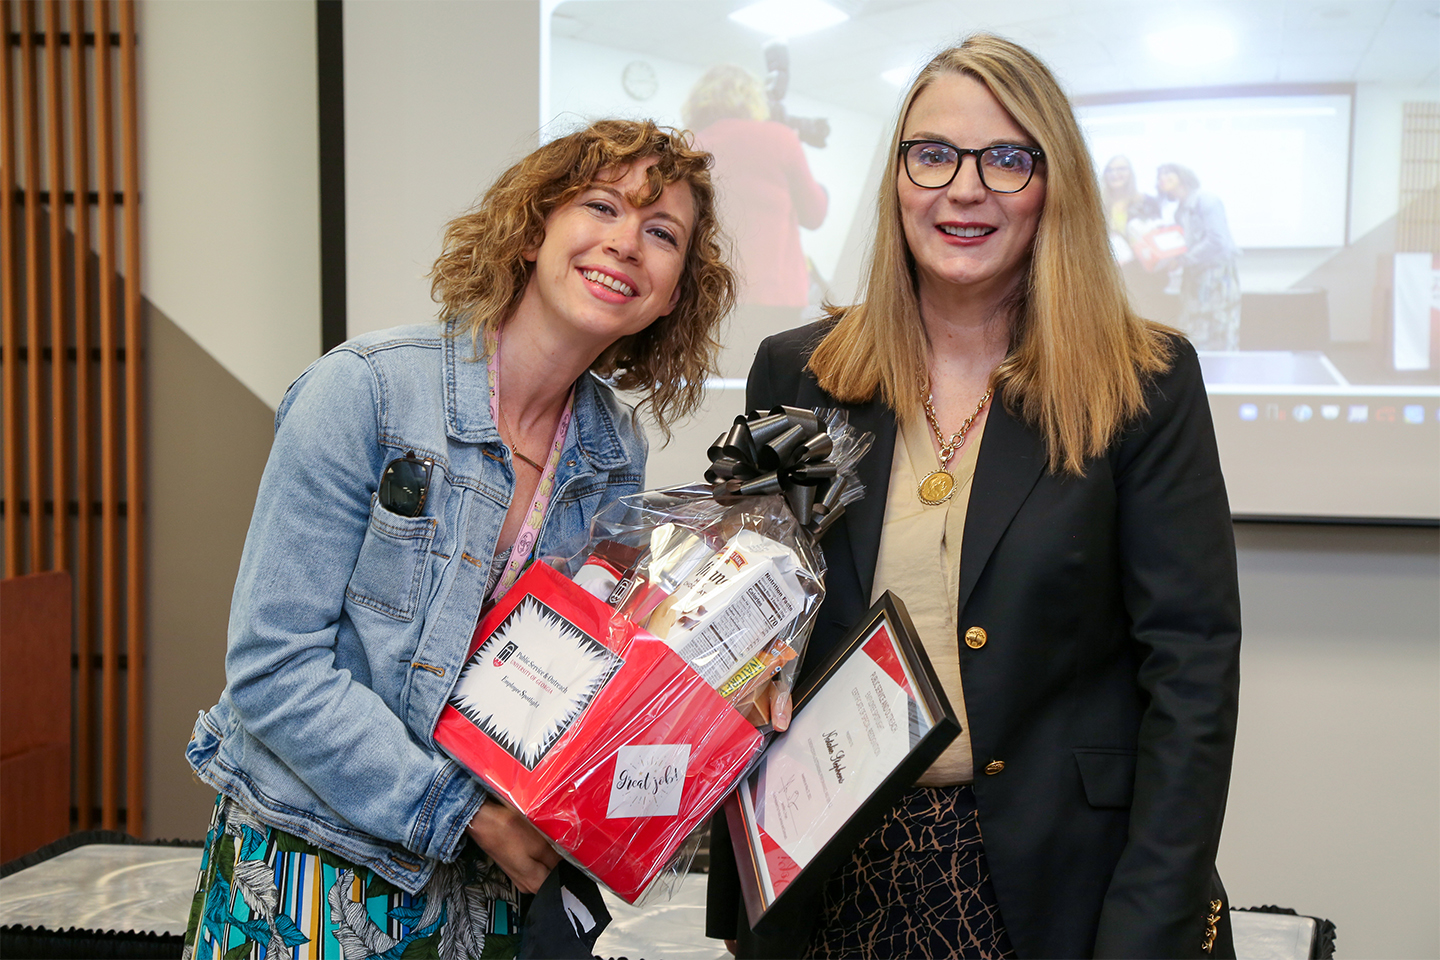 Natalie Stephens holds a gift basket and smiles next to Jennifer Frum